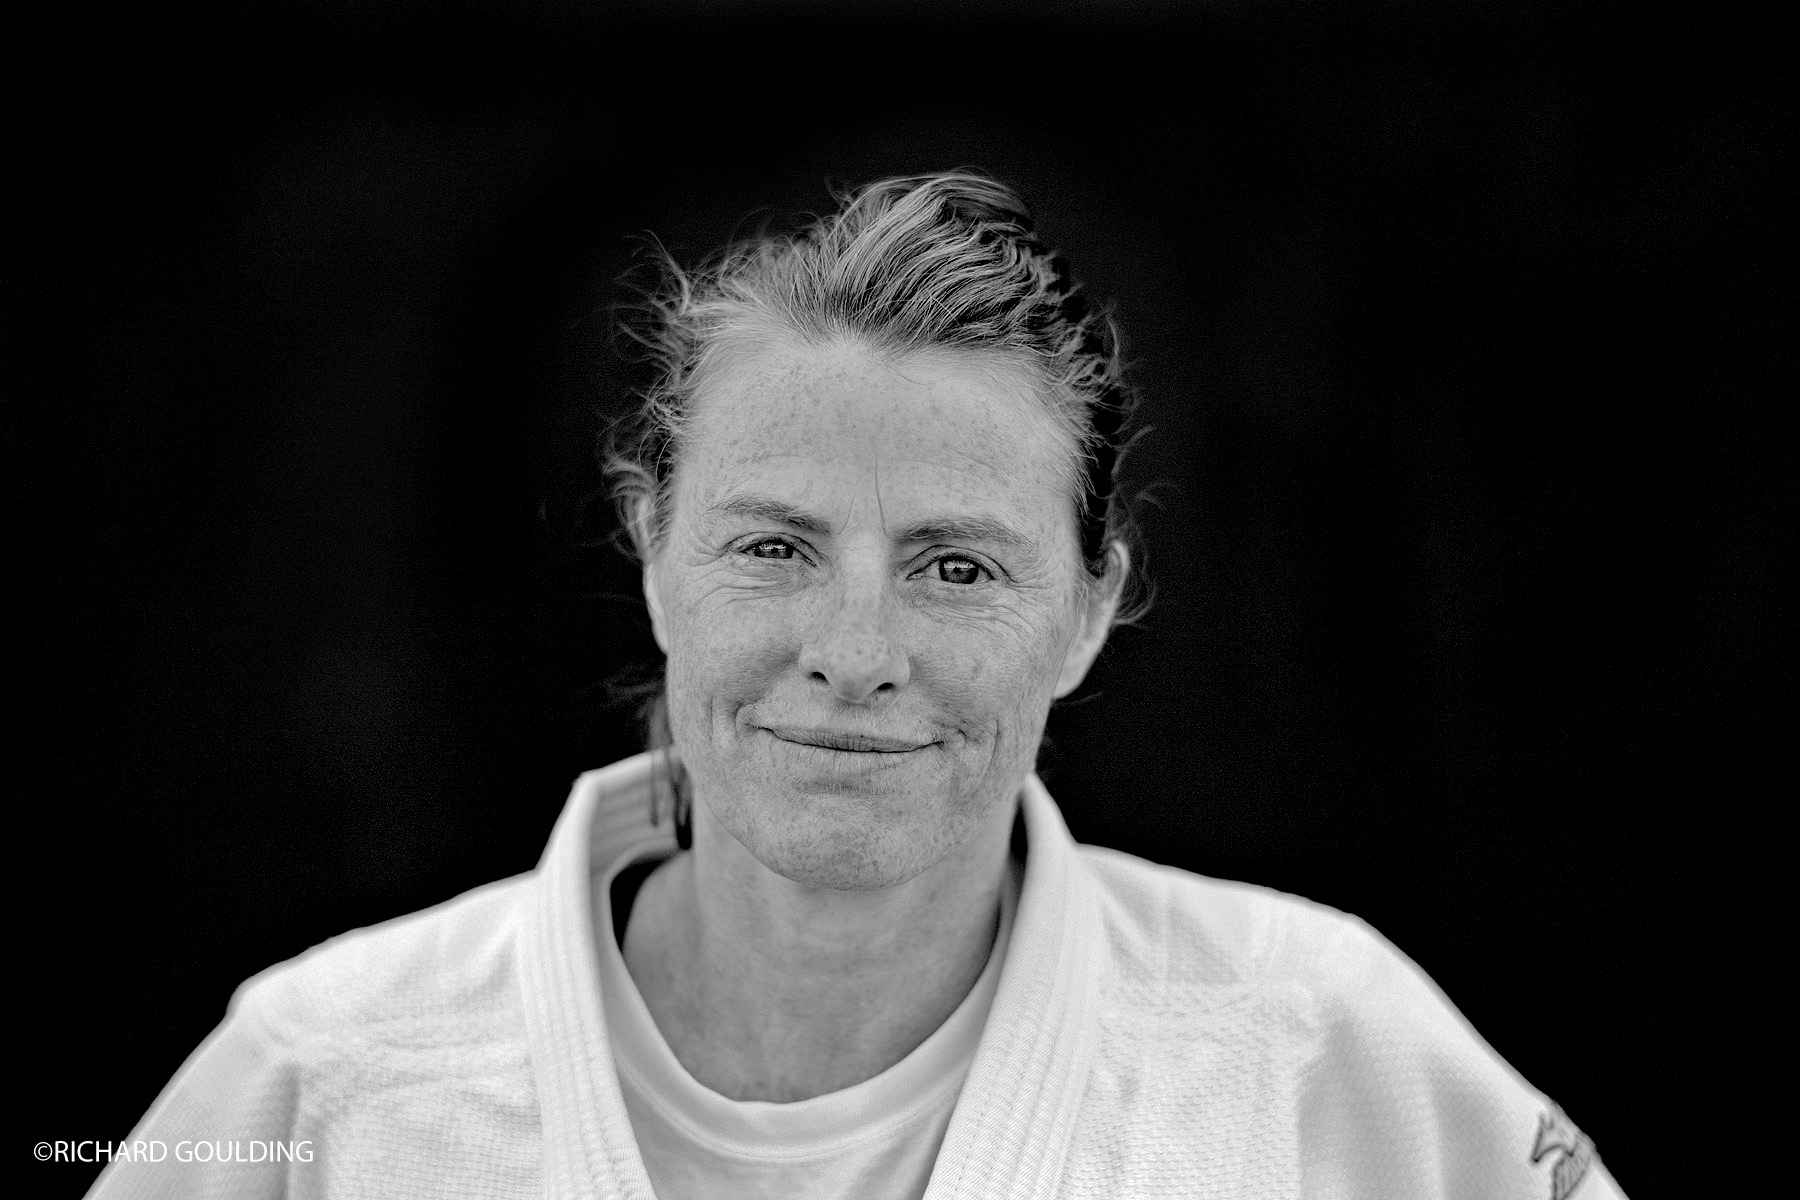 Jane Bridge is a British judoka who won three European Championship gold medals and was the first Women's World Champion at under 48 kg.